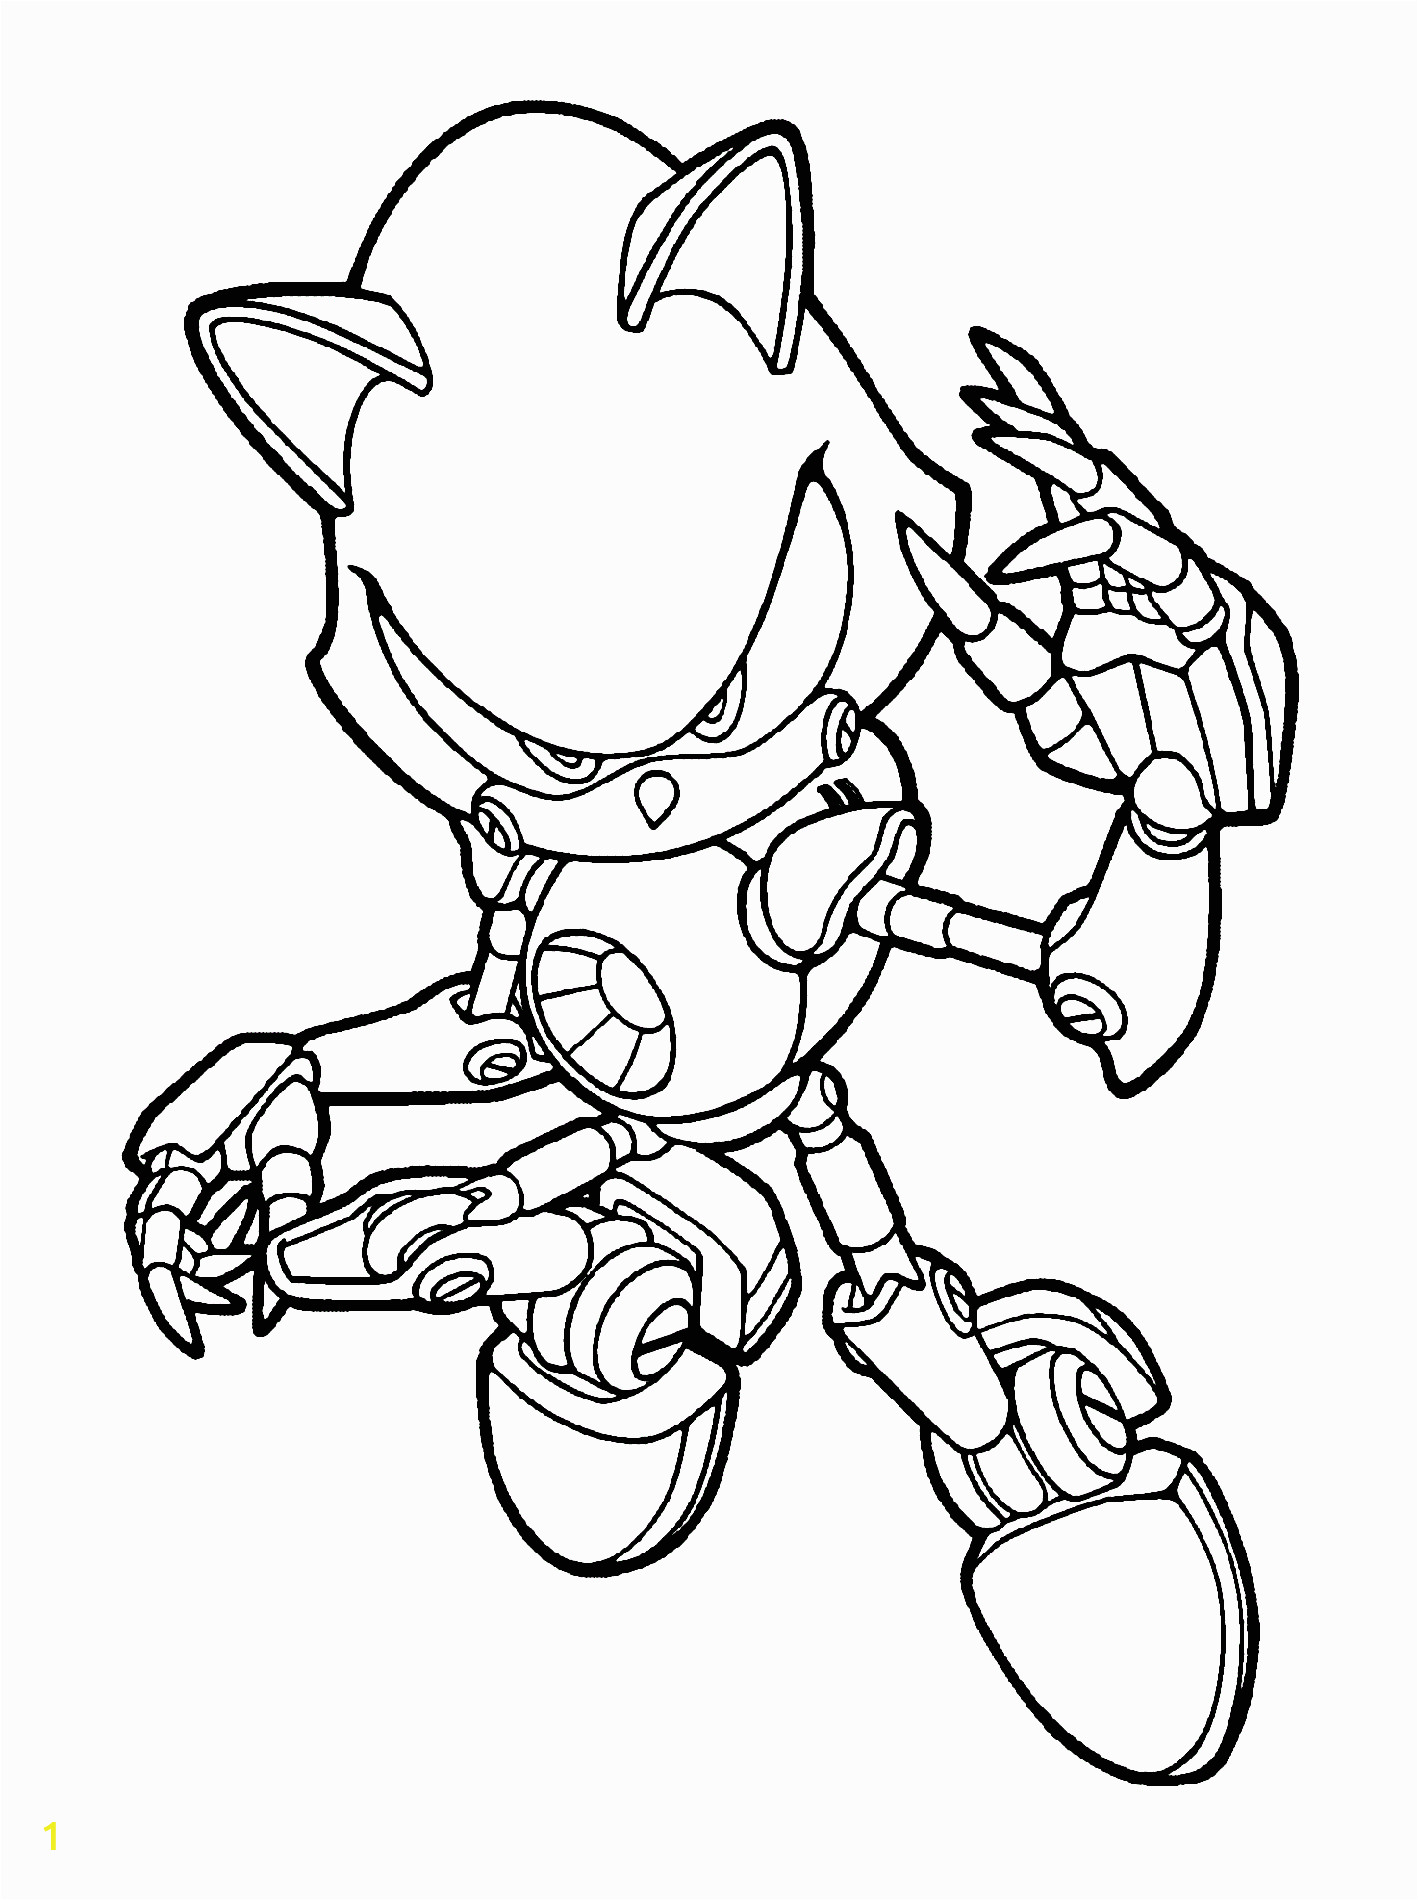 Metal sonic Coloring Pages to Print sonic Coloring Pages for Boys